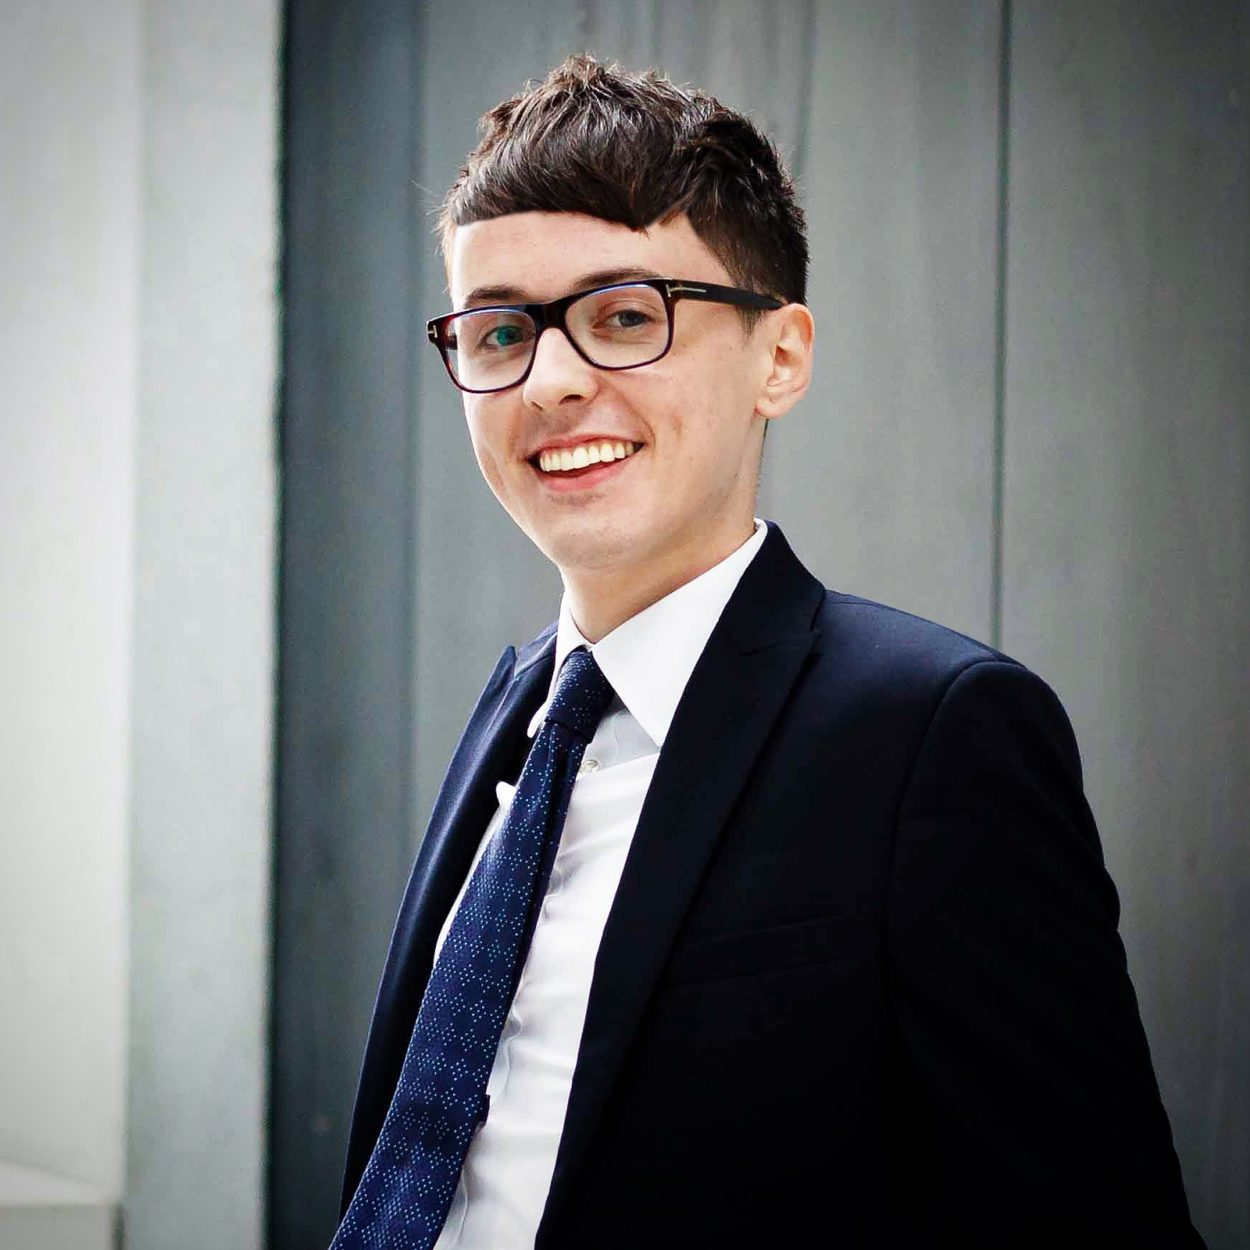 What you need to know about Darren Grimes